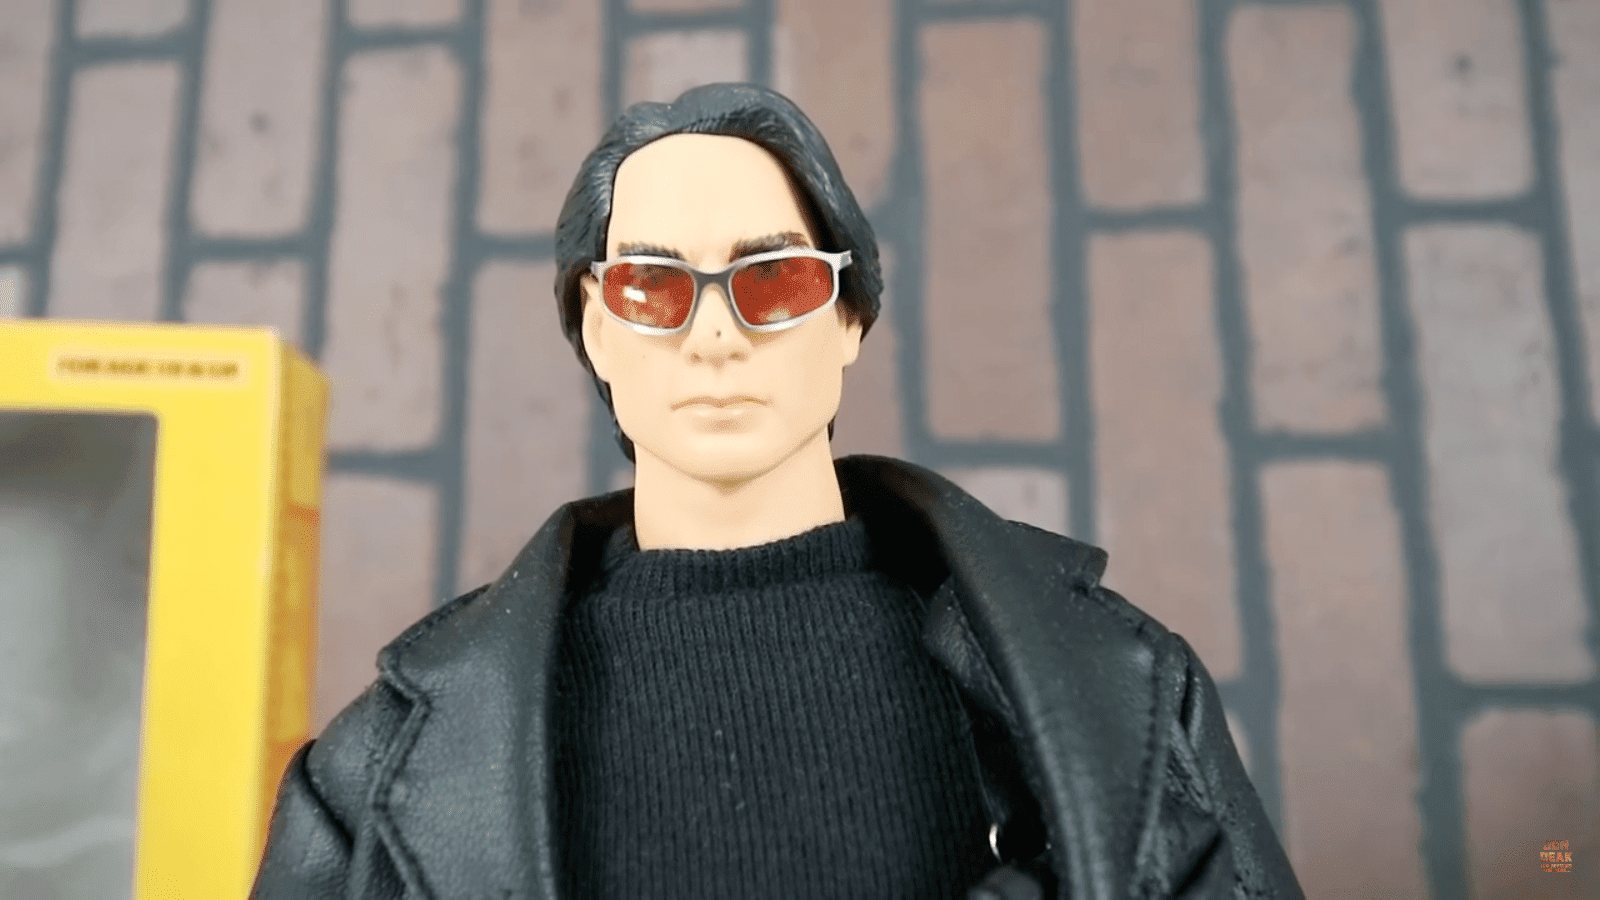 Hot Toys Mission Impossible Tom Cruise Famous Type Figure Image 3